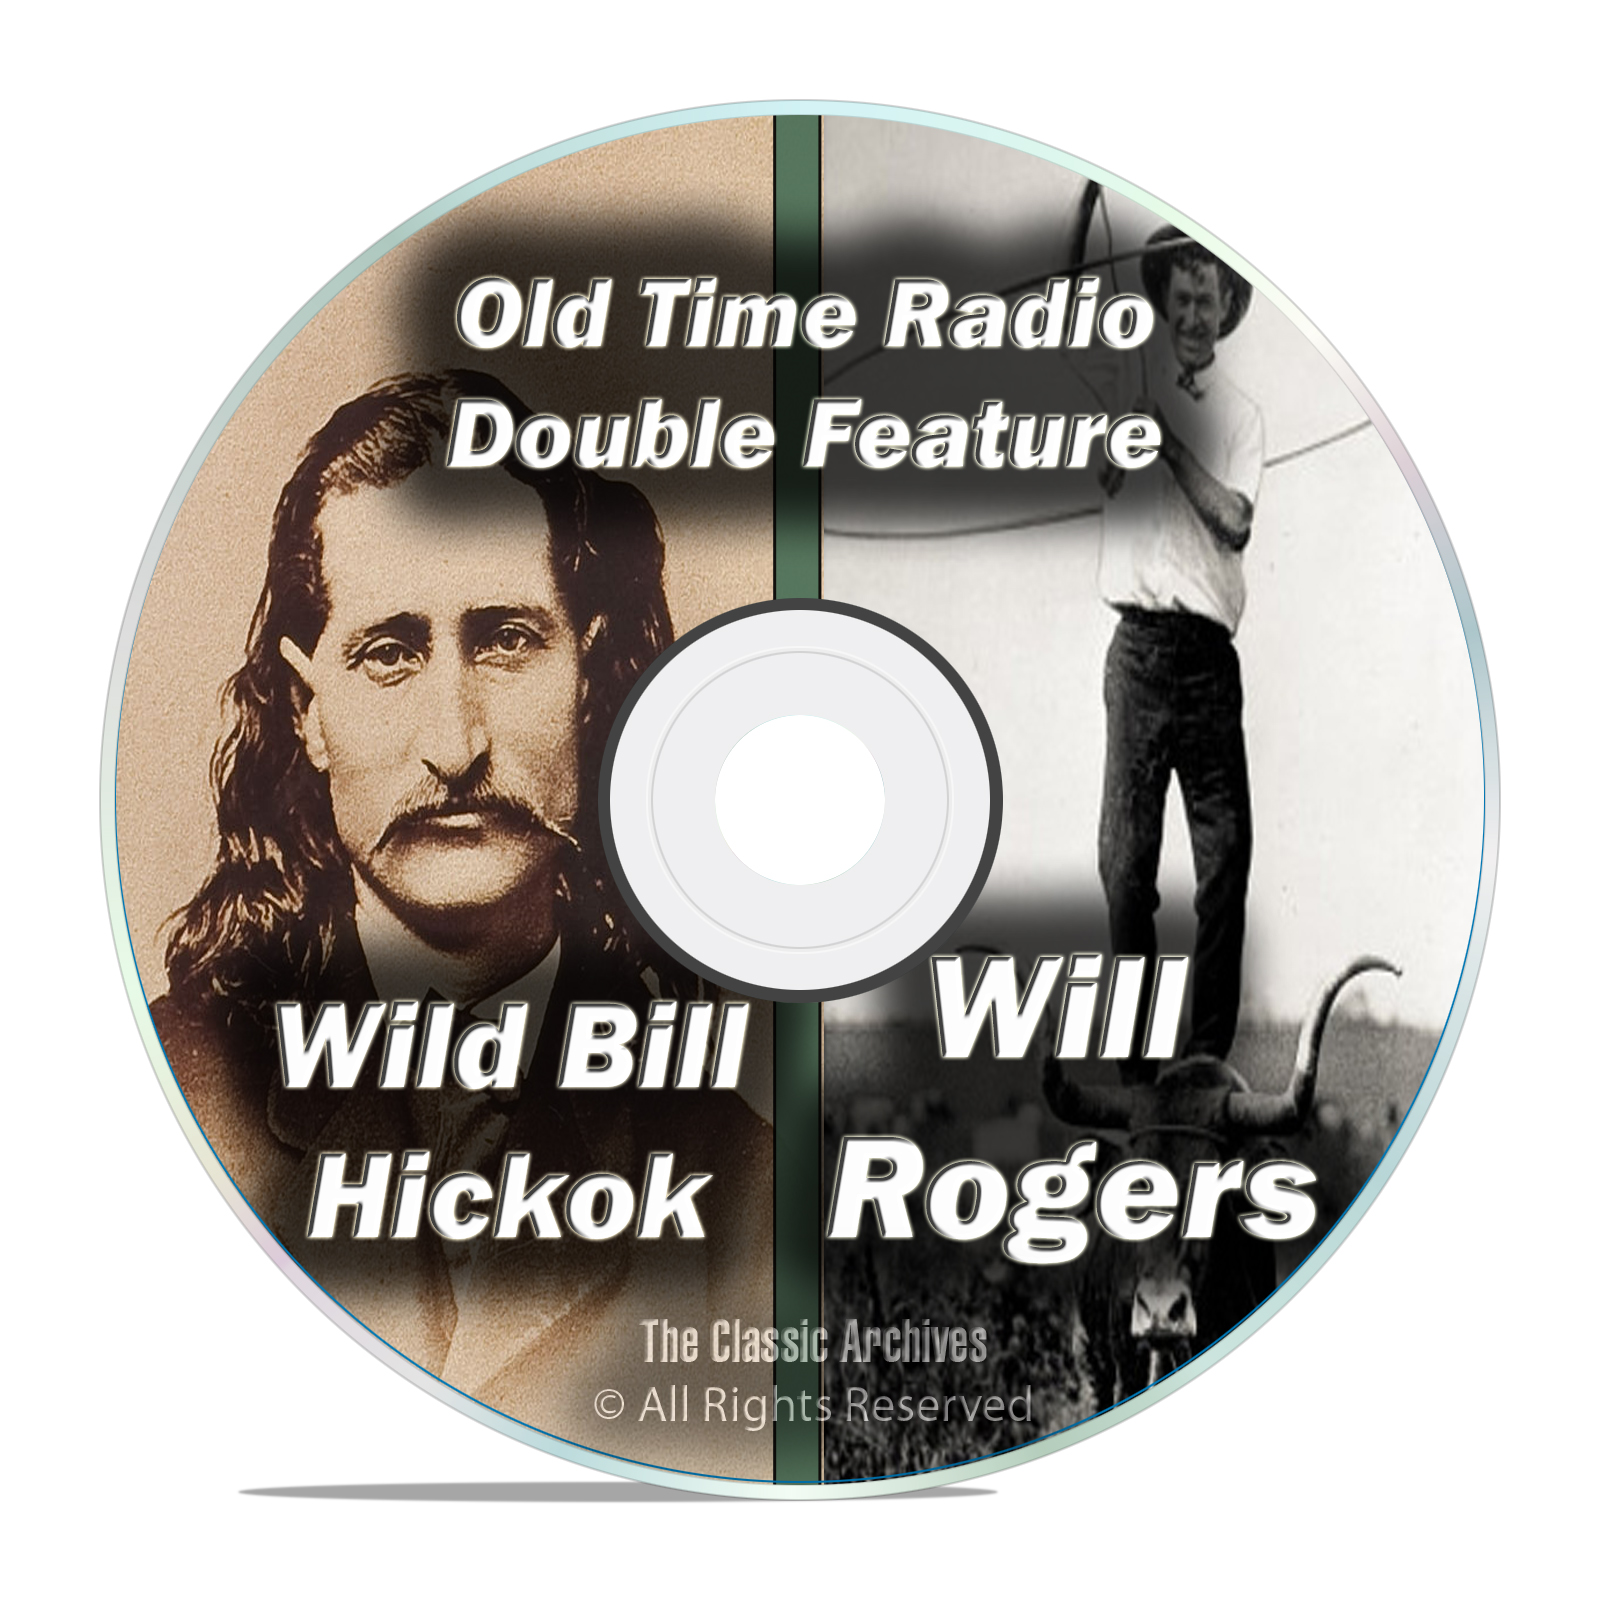 Wild Bill Hickok, Will Rogers, 426 FULL RUN Old Time Radio Shows MP3 DVD